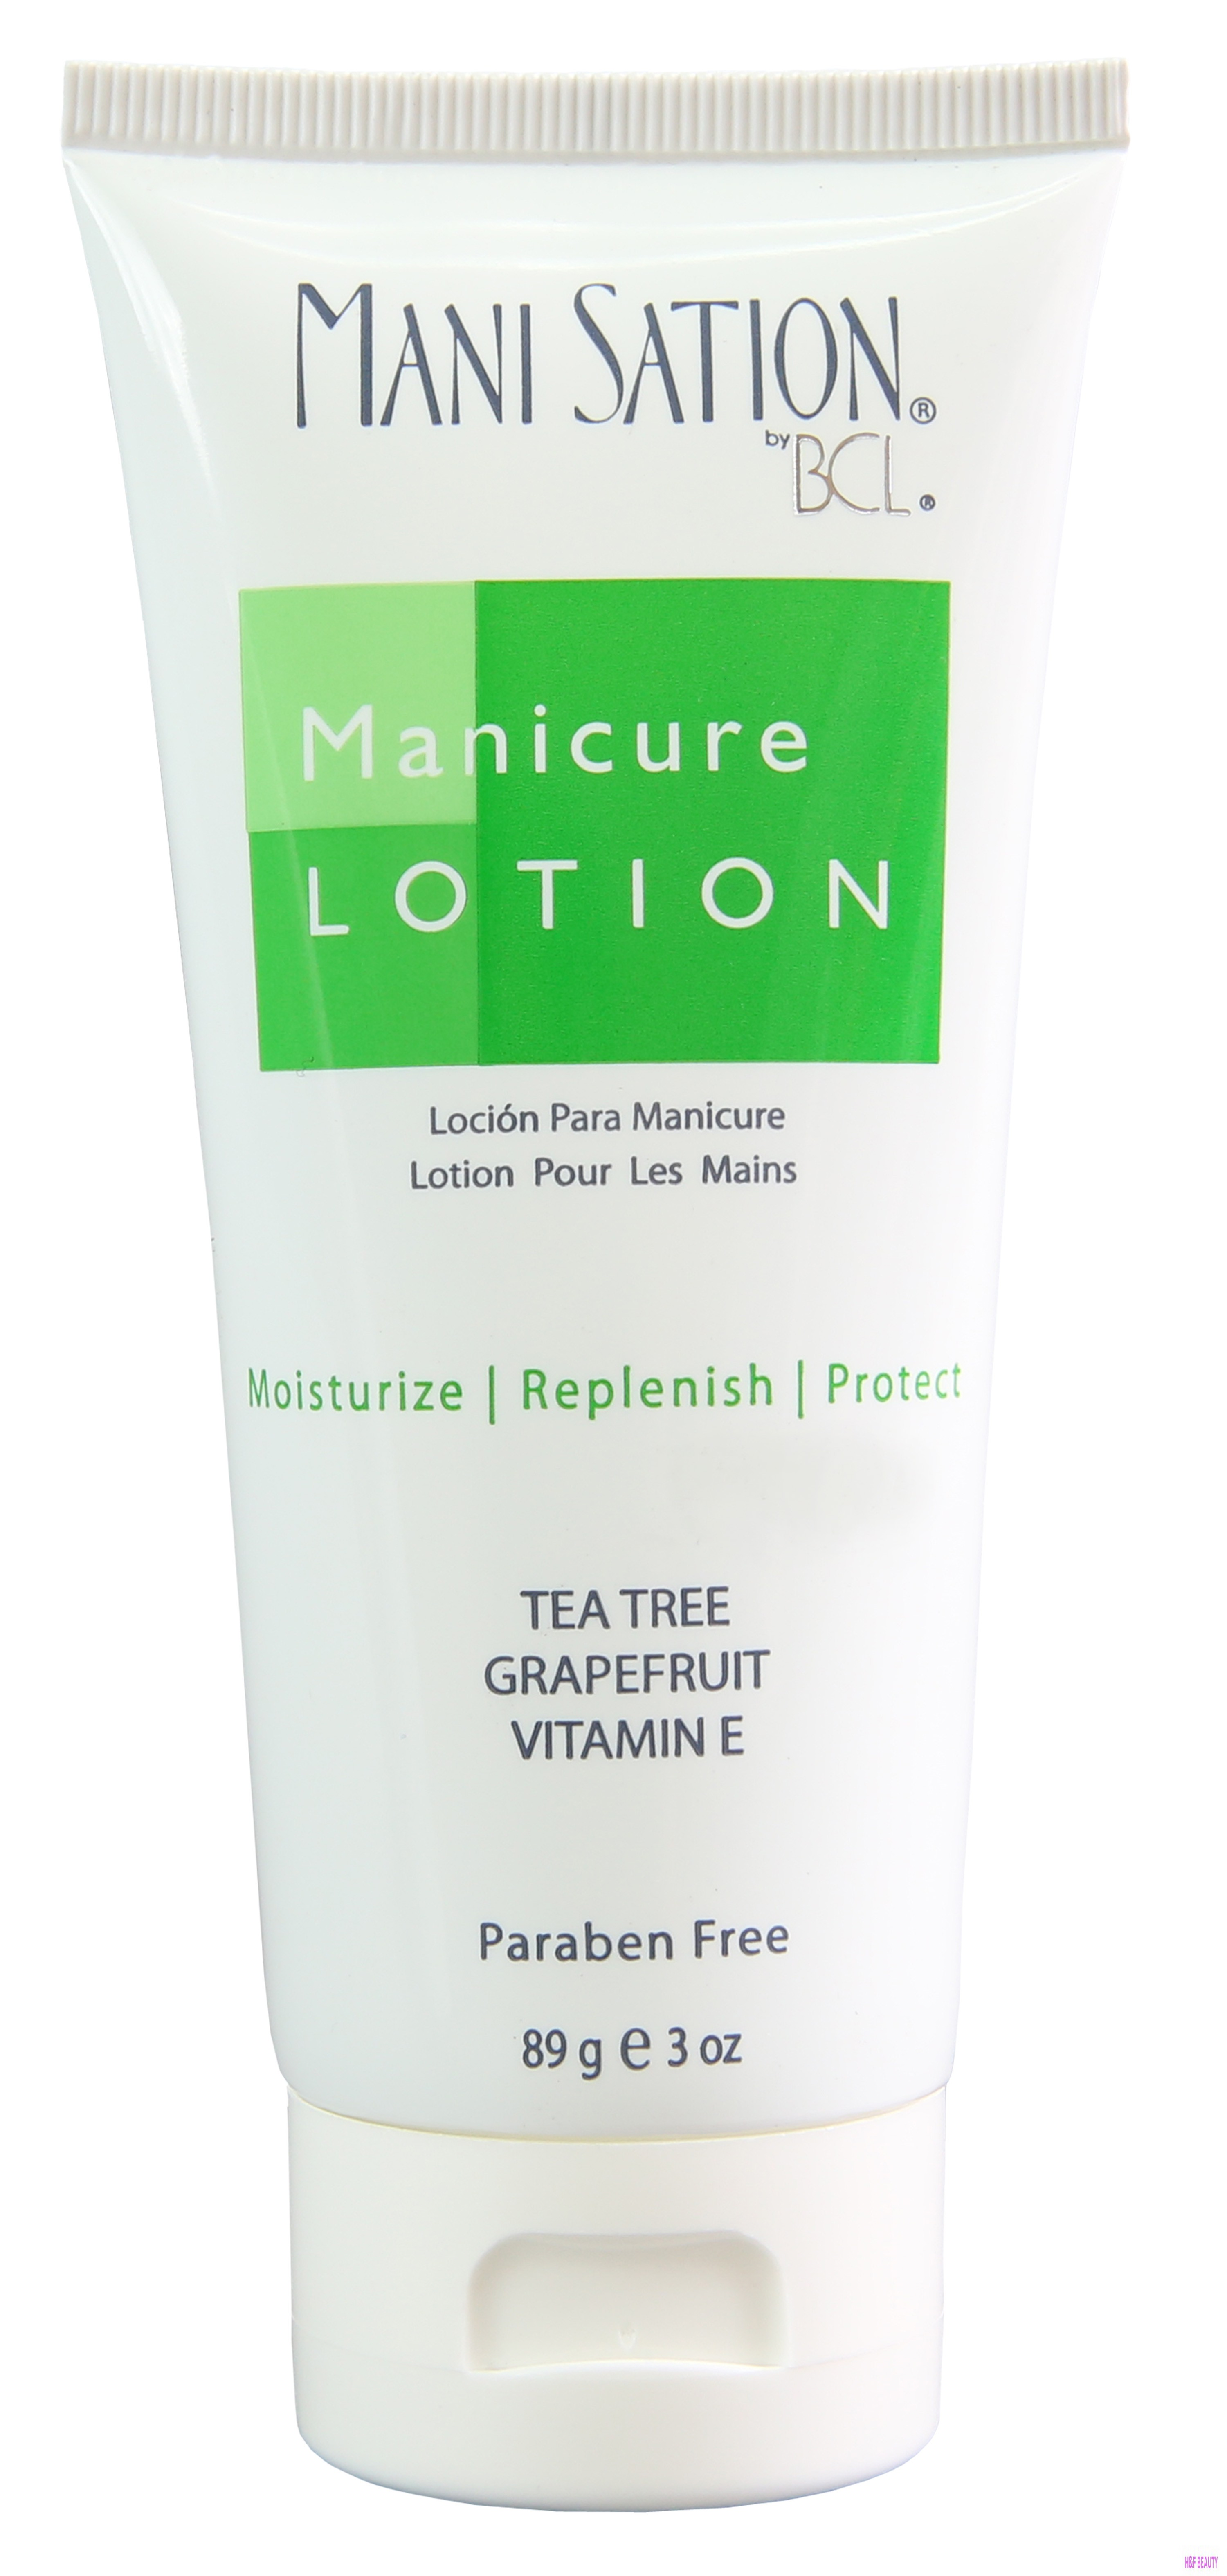 Mani Sation Manicure Lotion